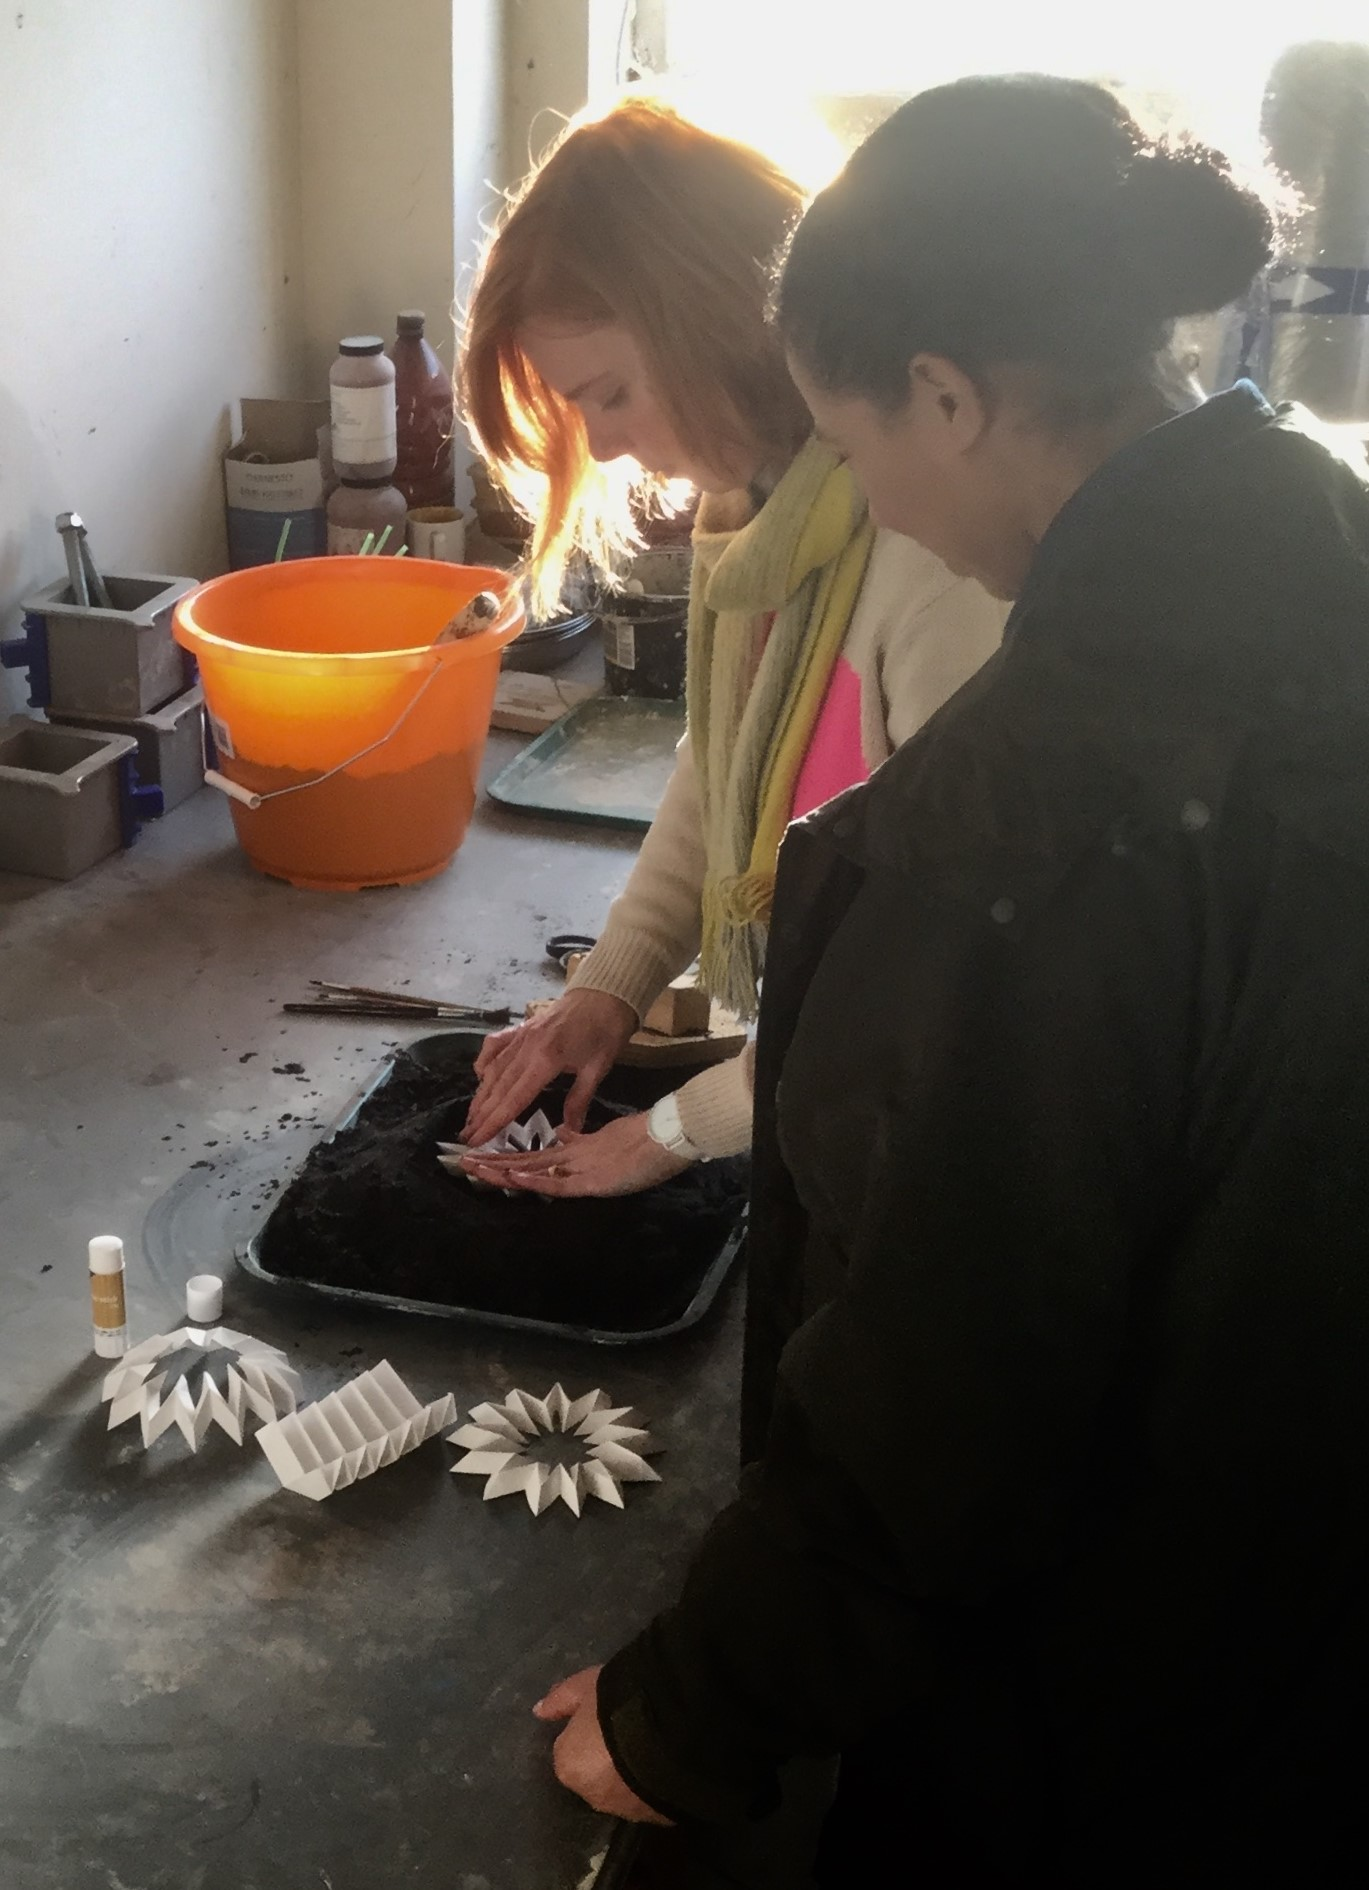 Hannah George shows presenter Margherita Taylor how sand casting paper art can make space for nature in built environment.